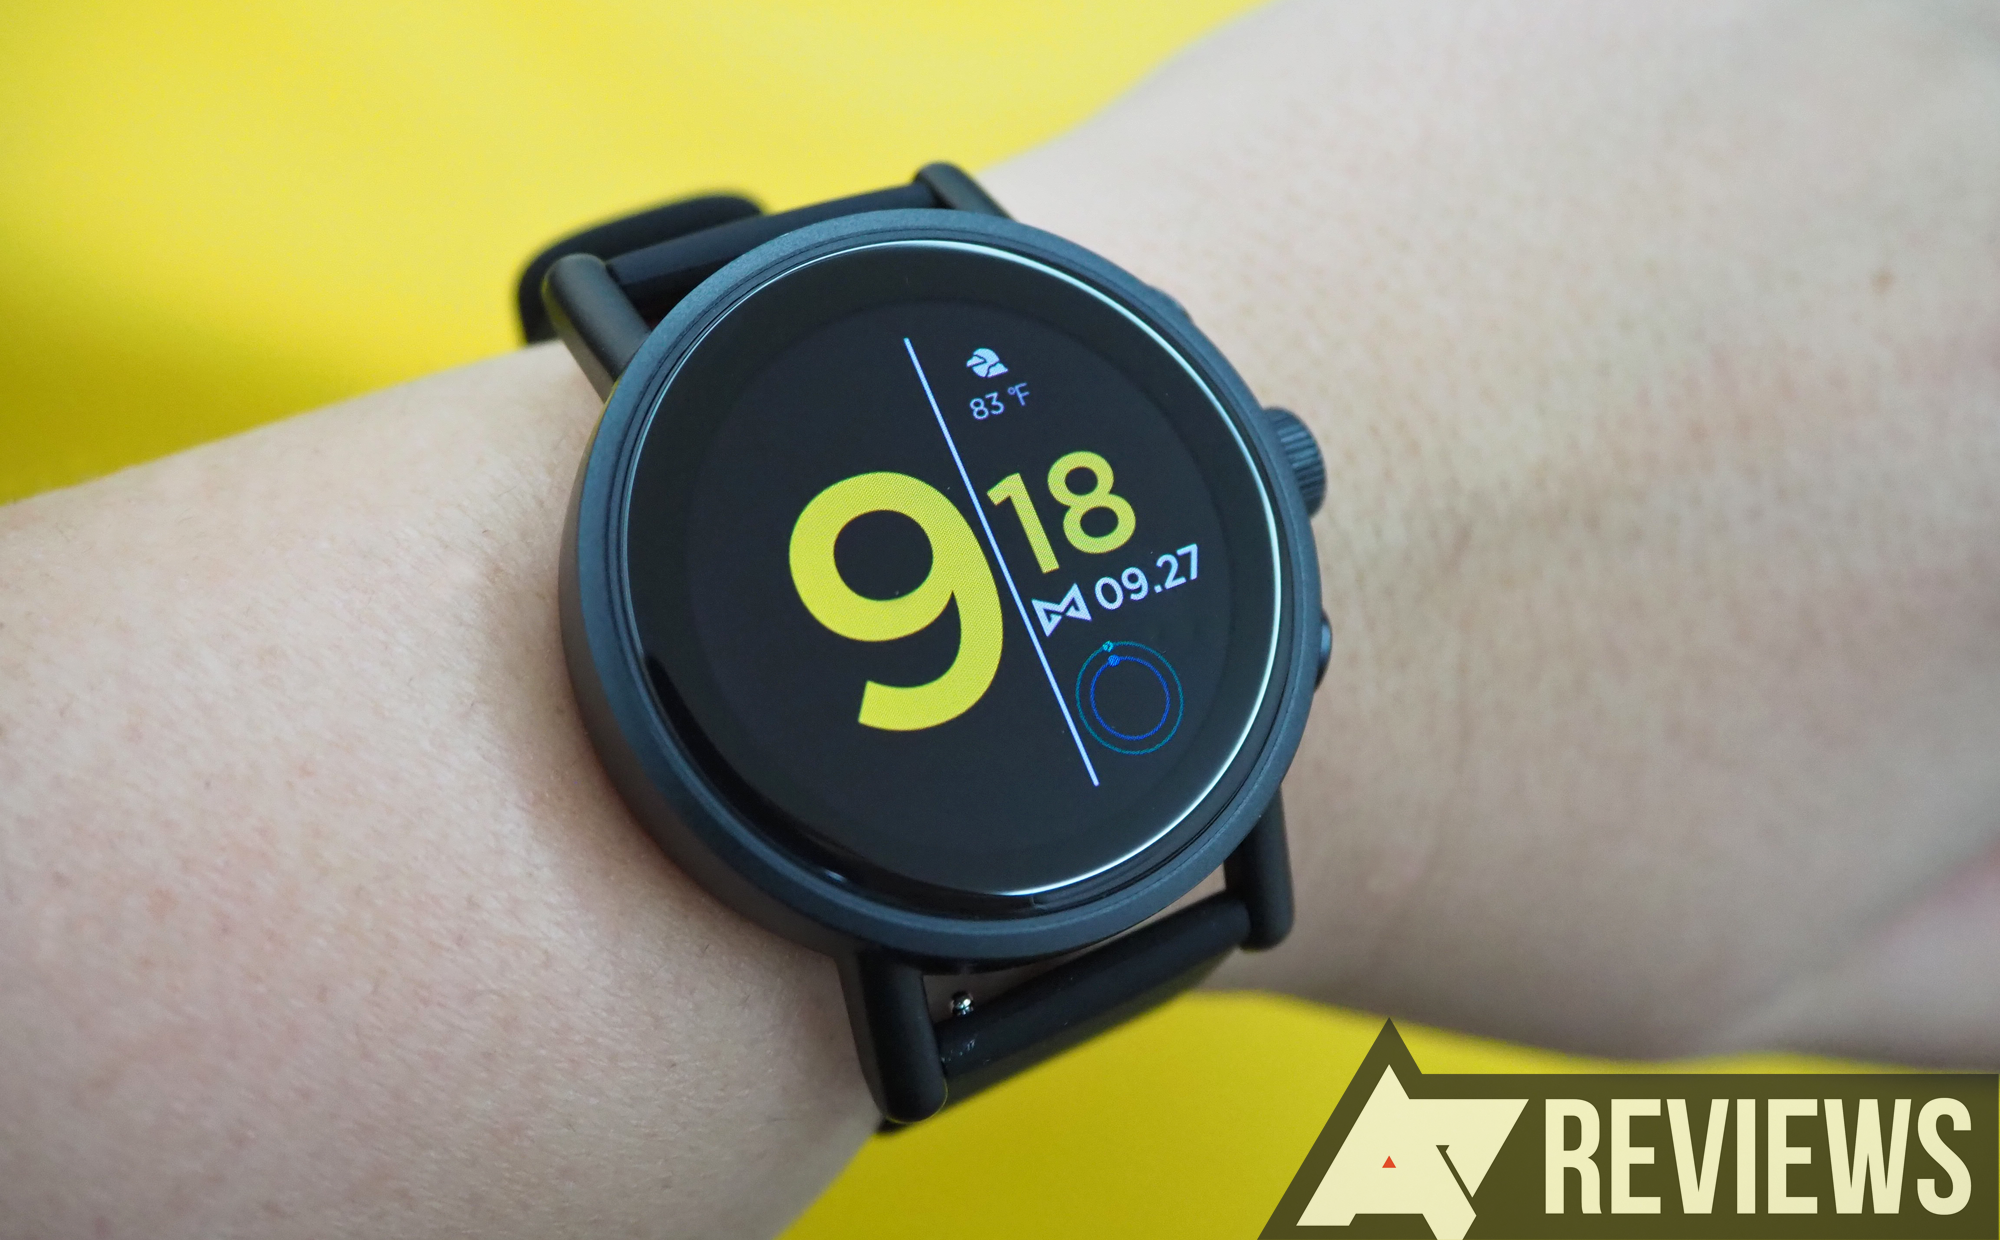 Misfit Vapor X review: Great looking smartwatch ruined by older hardware